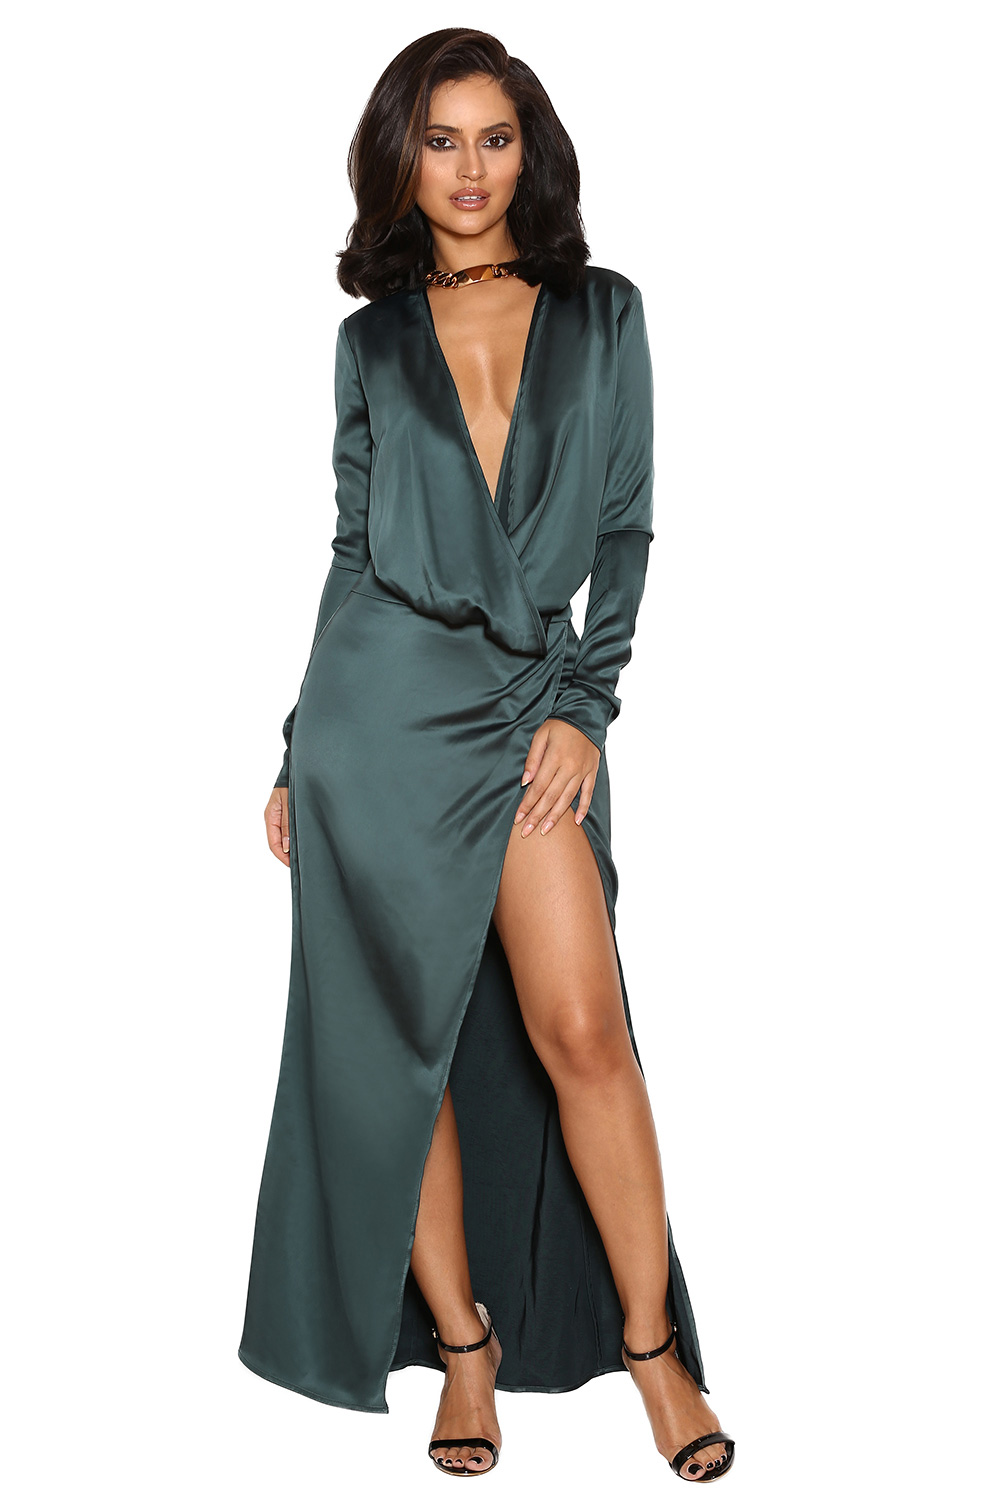 You Can Buy Beyonc 233 S Plunging High Slit Dress For 165